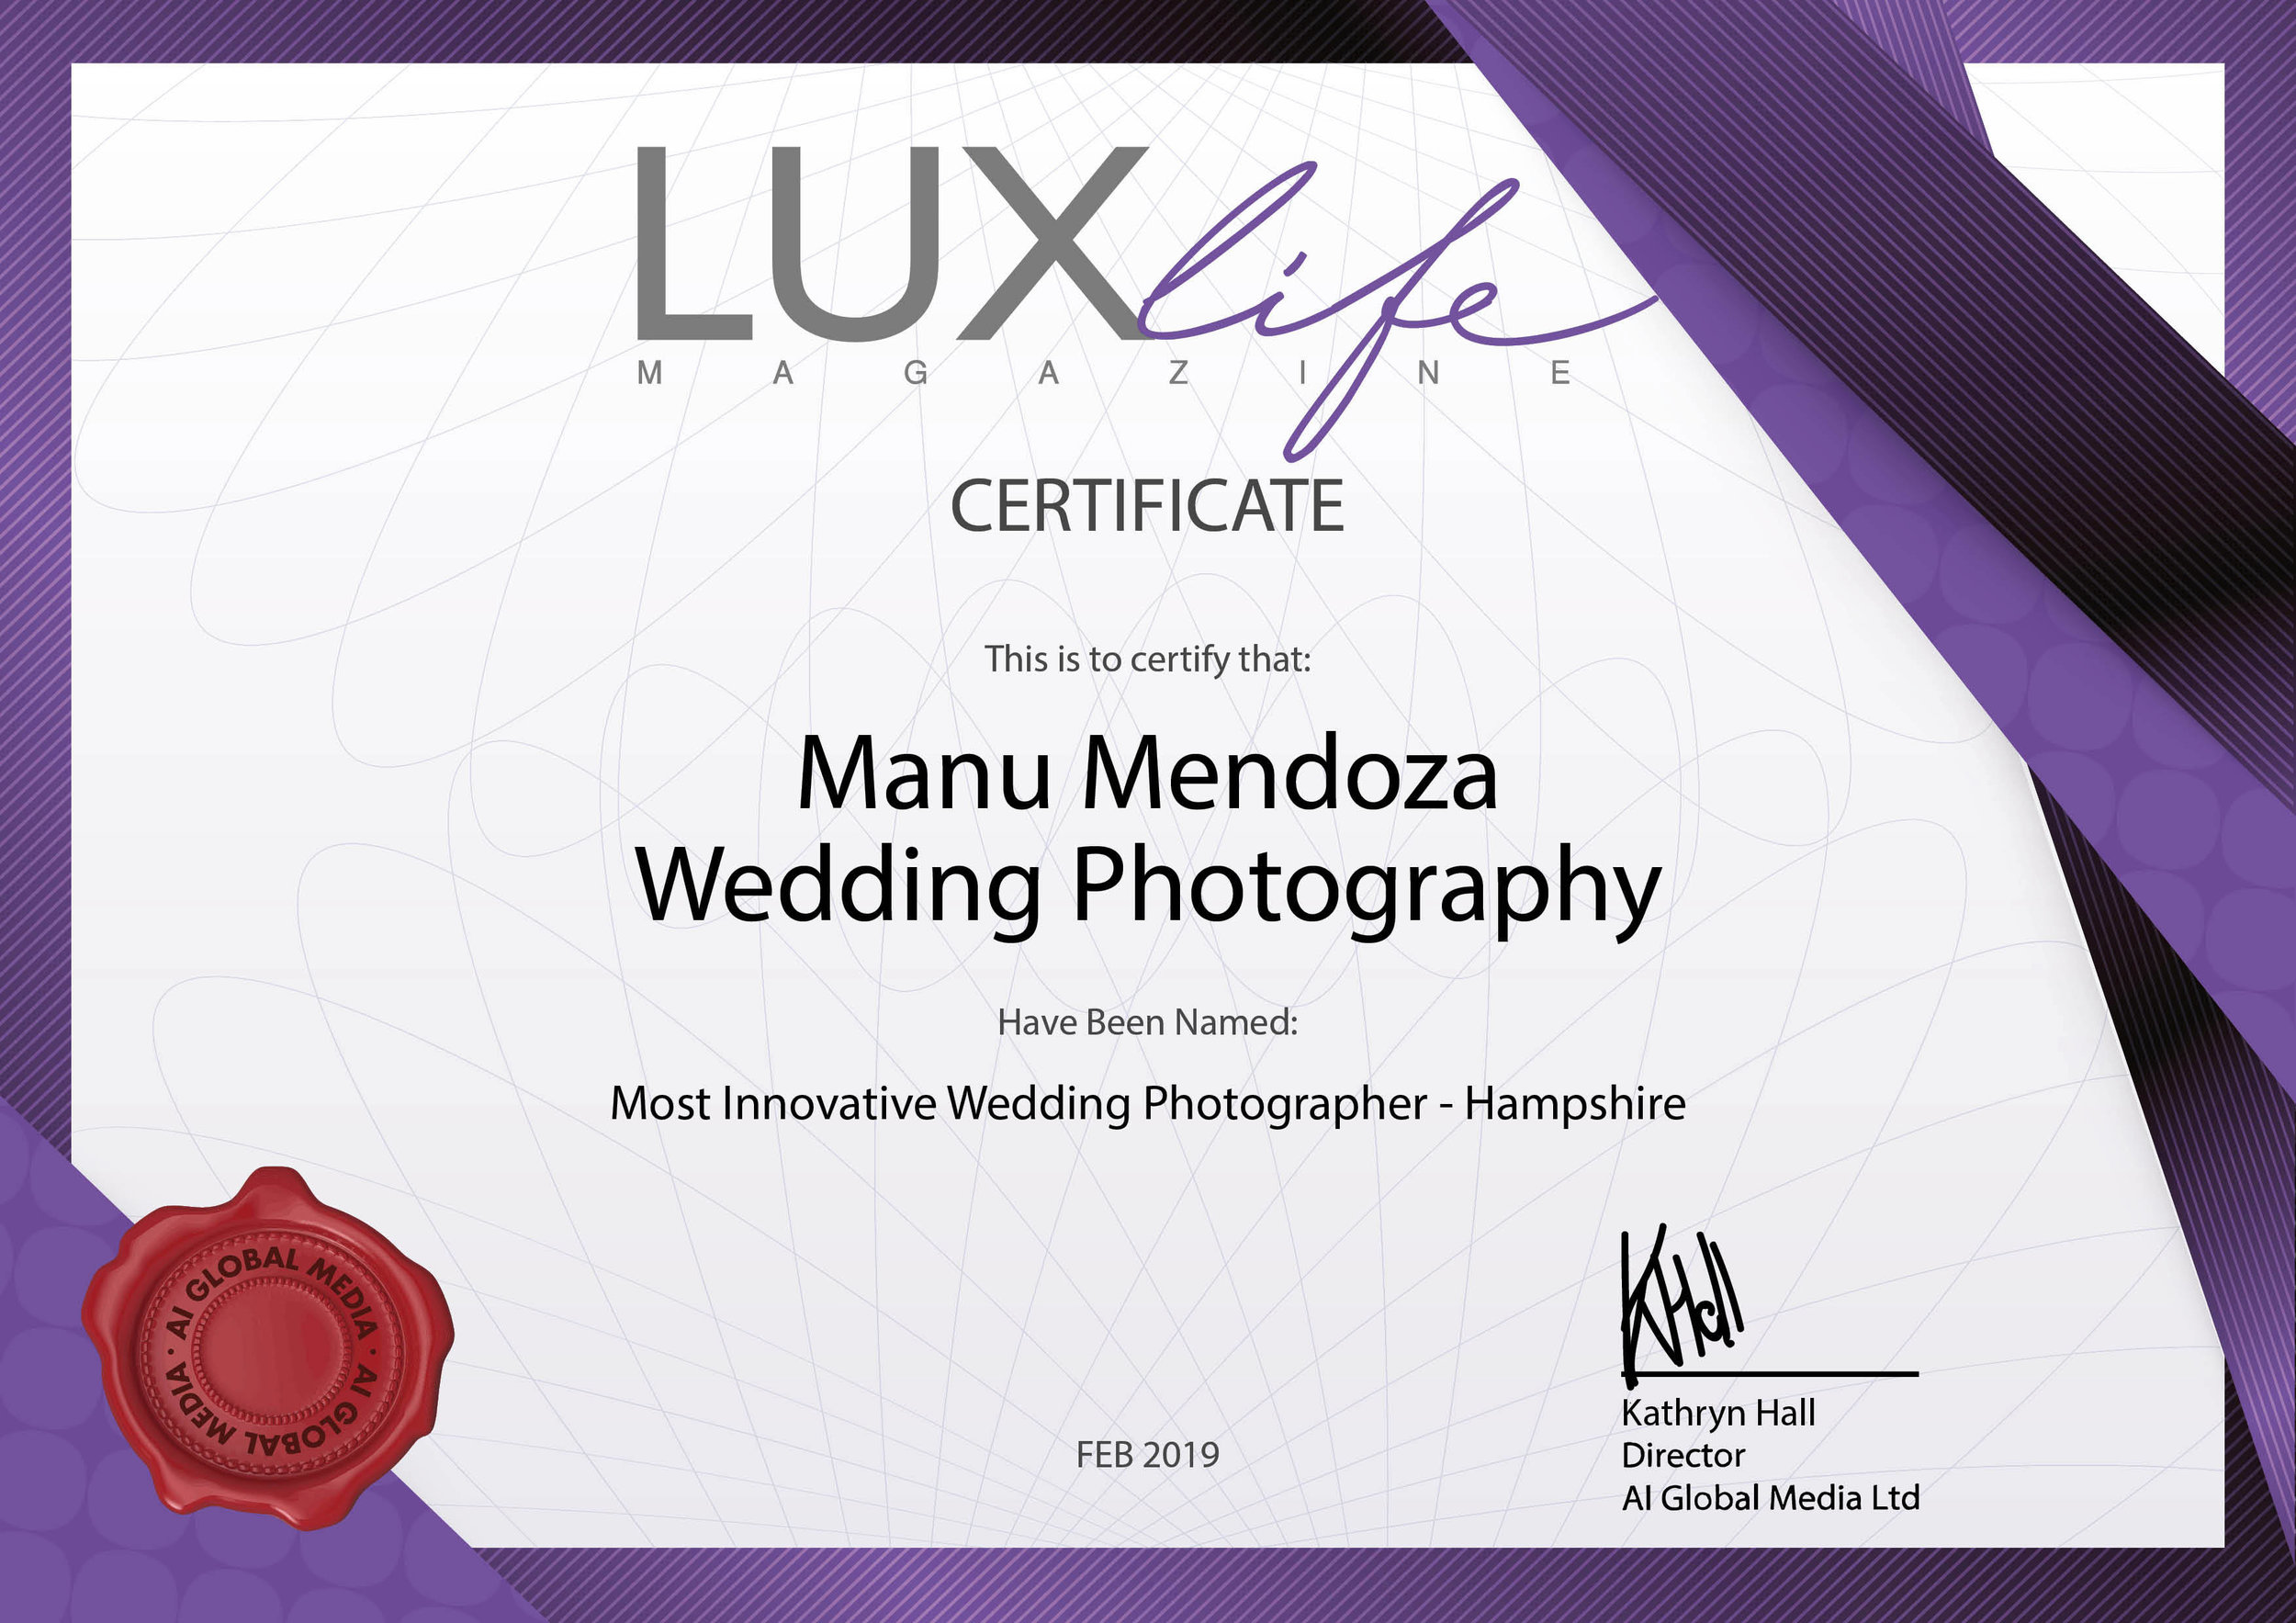 Award Winning Wedding Photographer - Manu Mendoza Wedding Photography